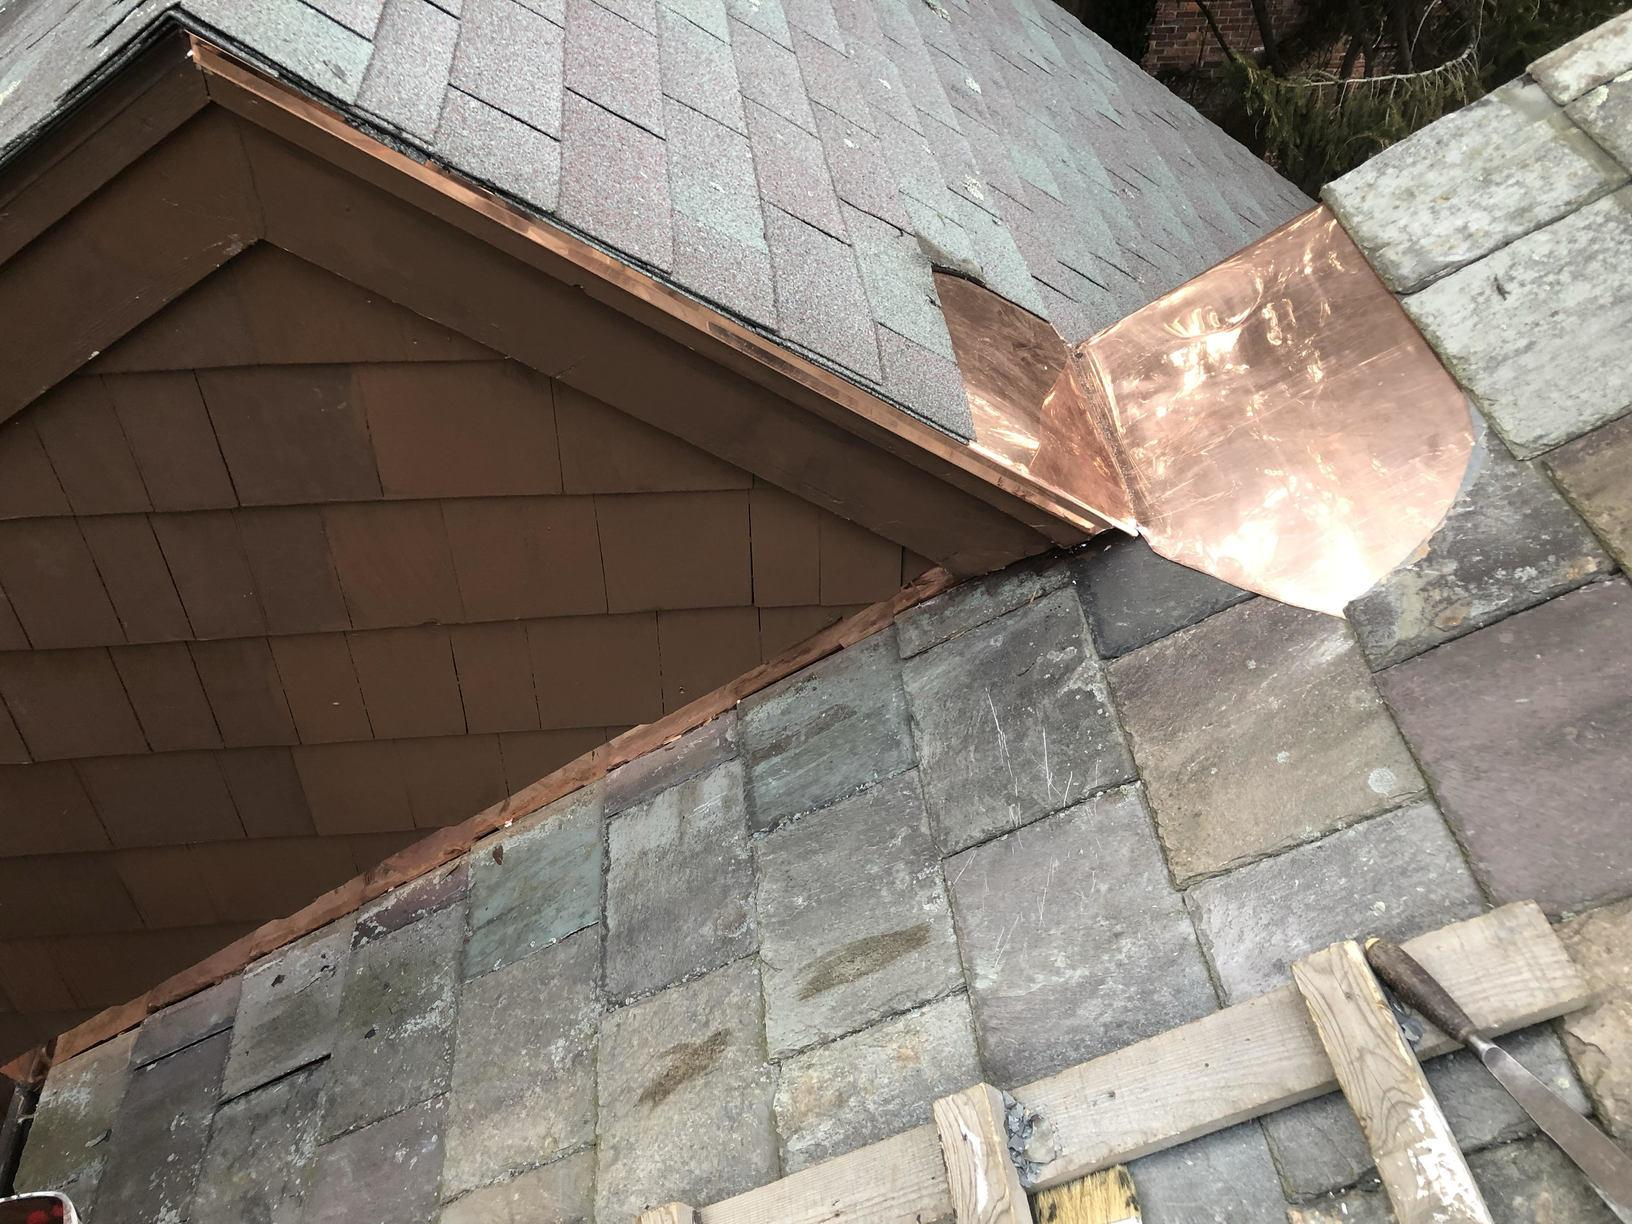 Copper Wash and Step Flashing Installation in Belmont, MA - After Photo